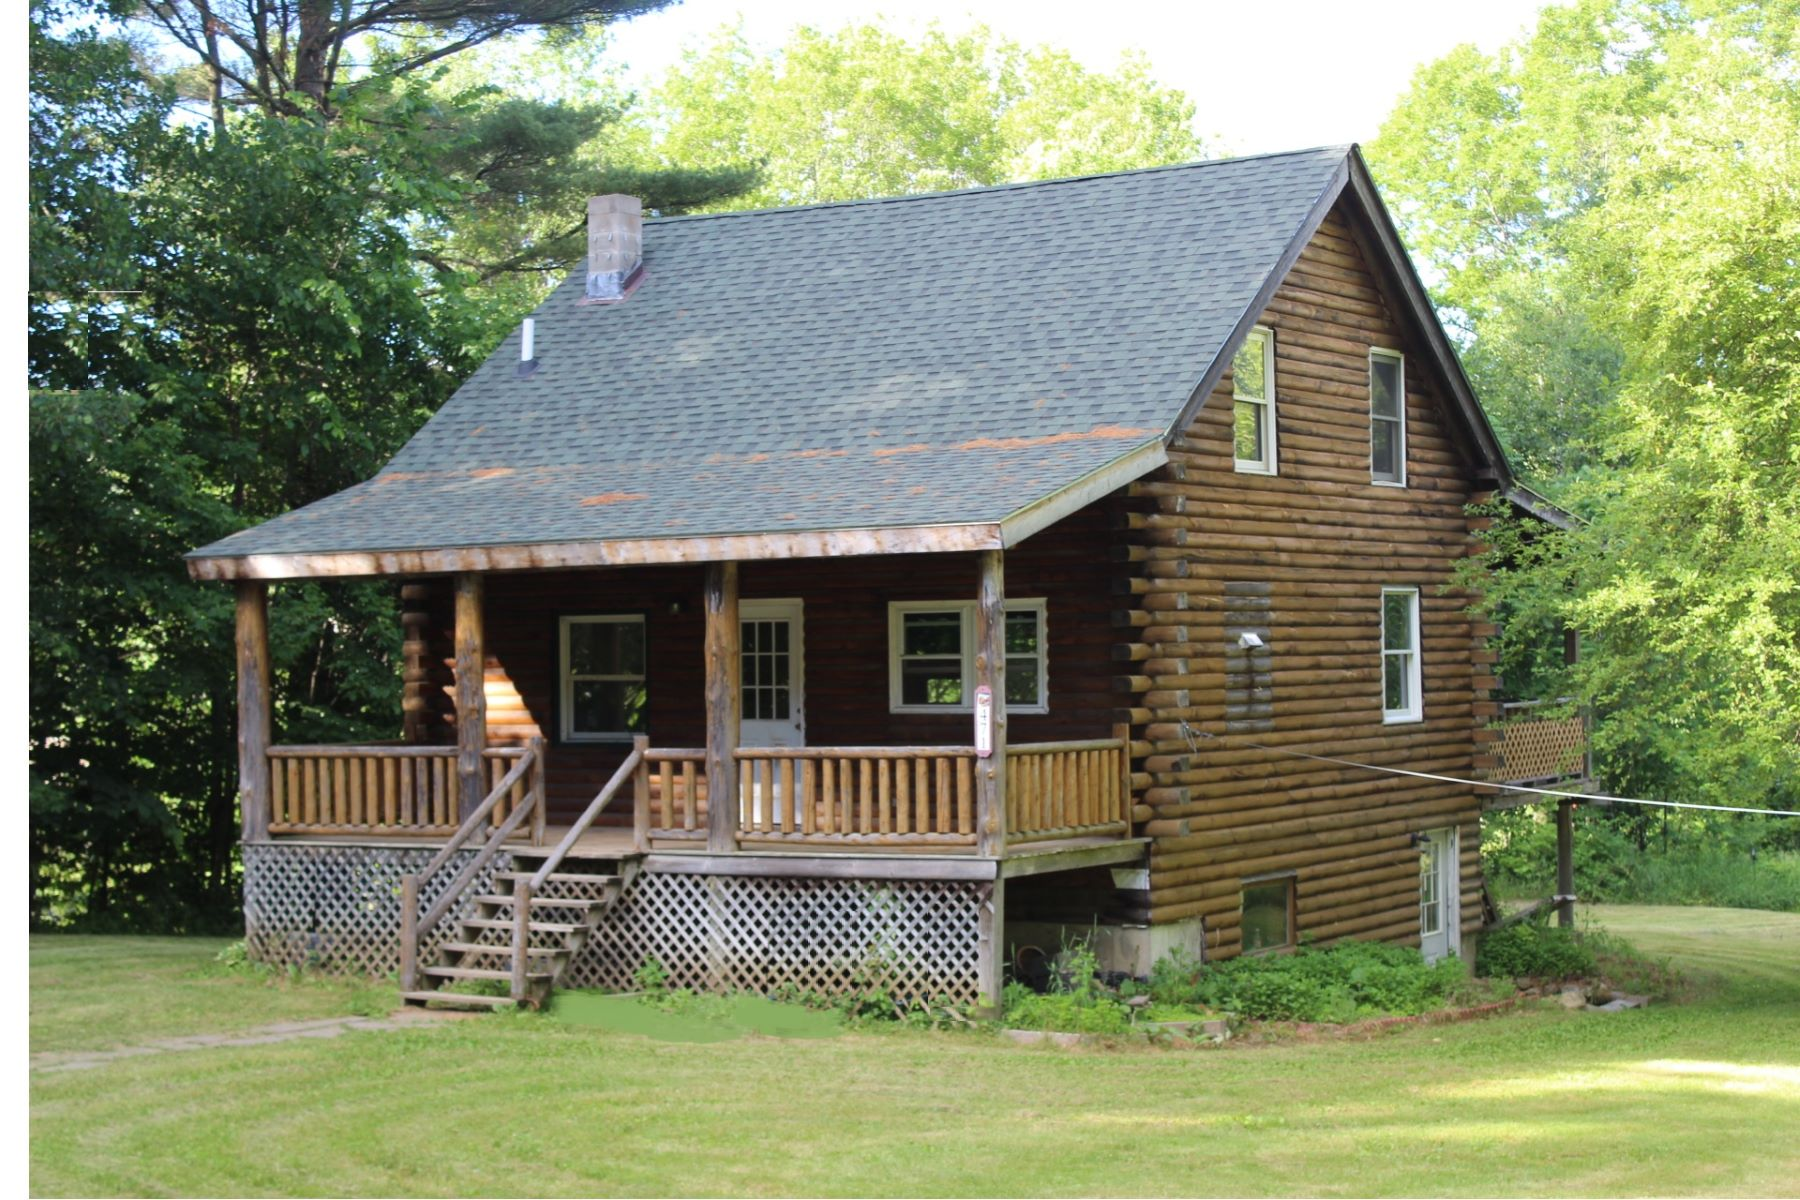 Single Family Home for Sale at 471 Back Mountain Road, Windsor 471 Back Mountain Rd, Windsor, Vermont, 05089 United States